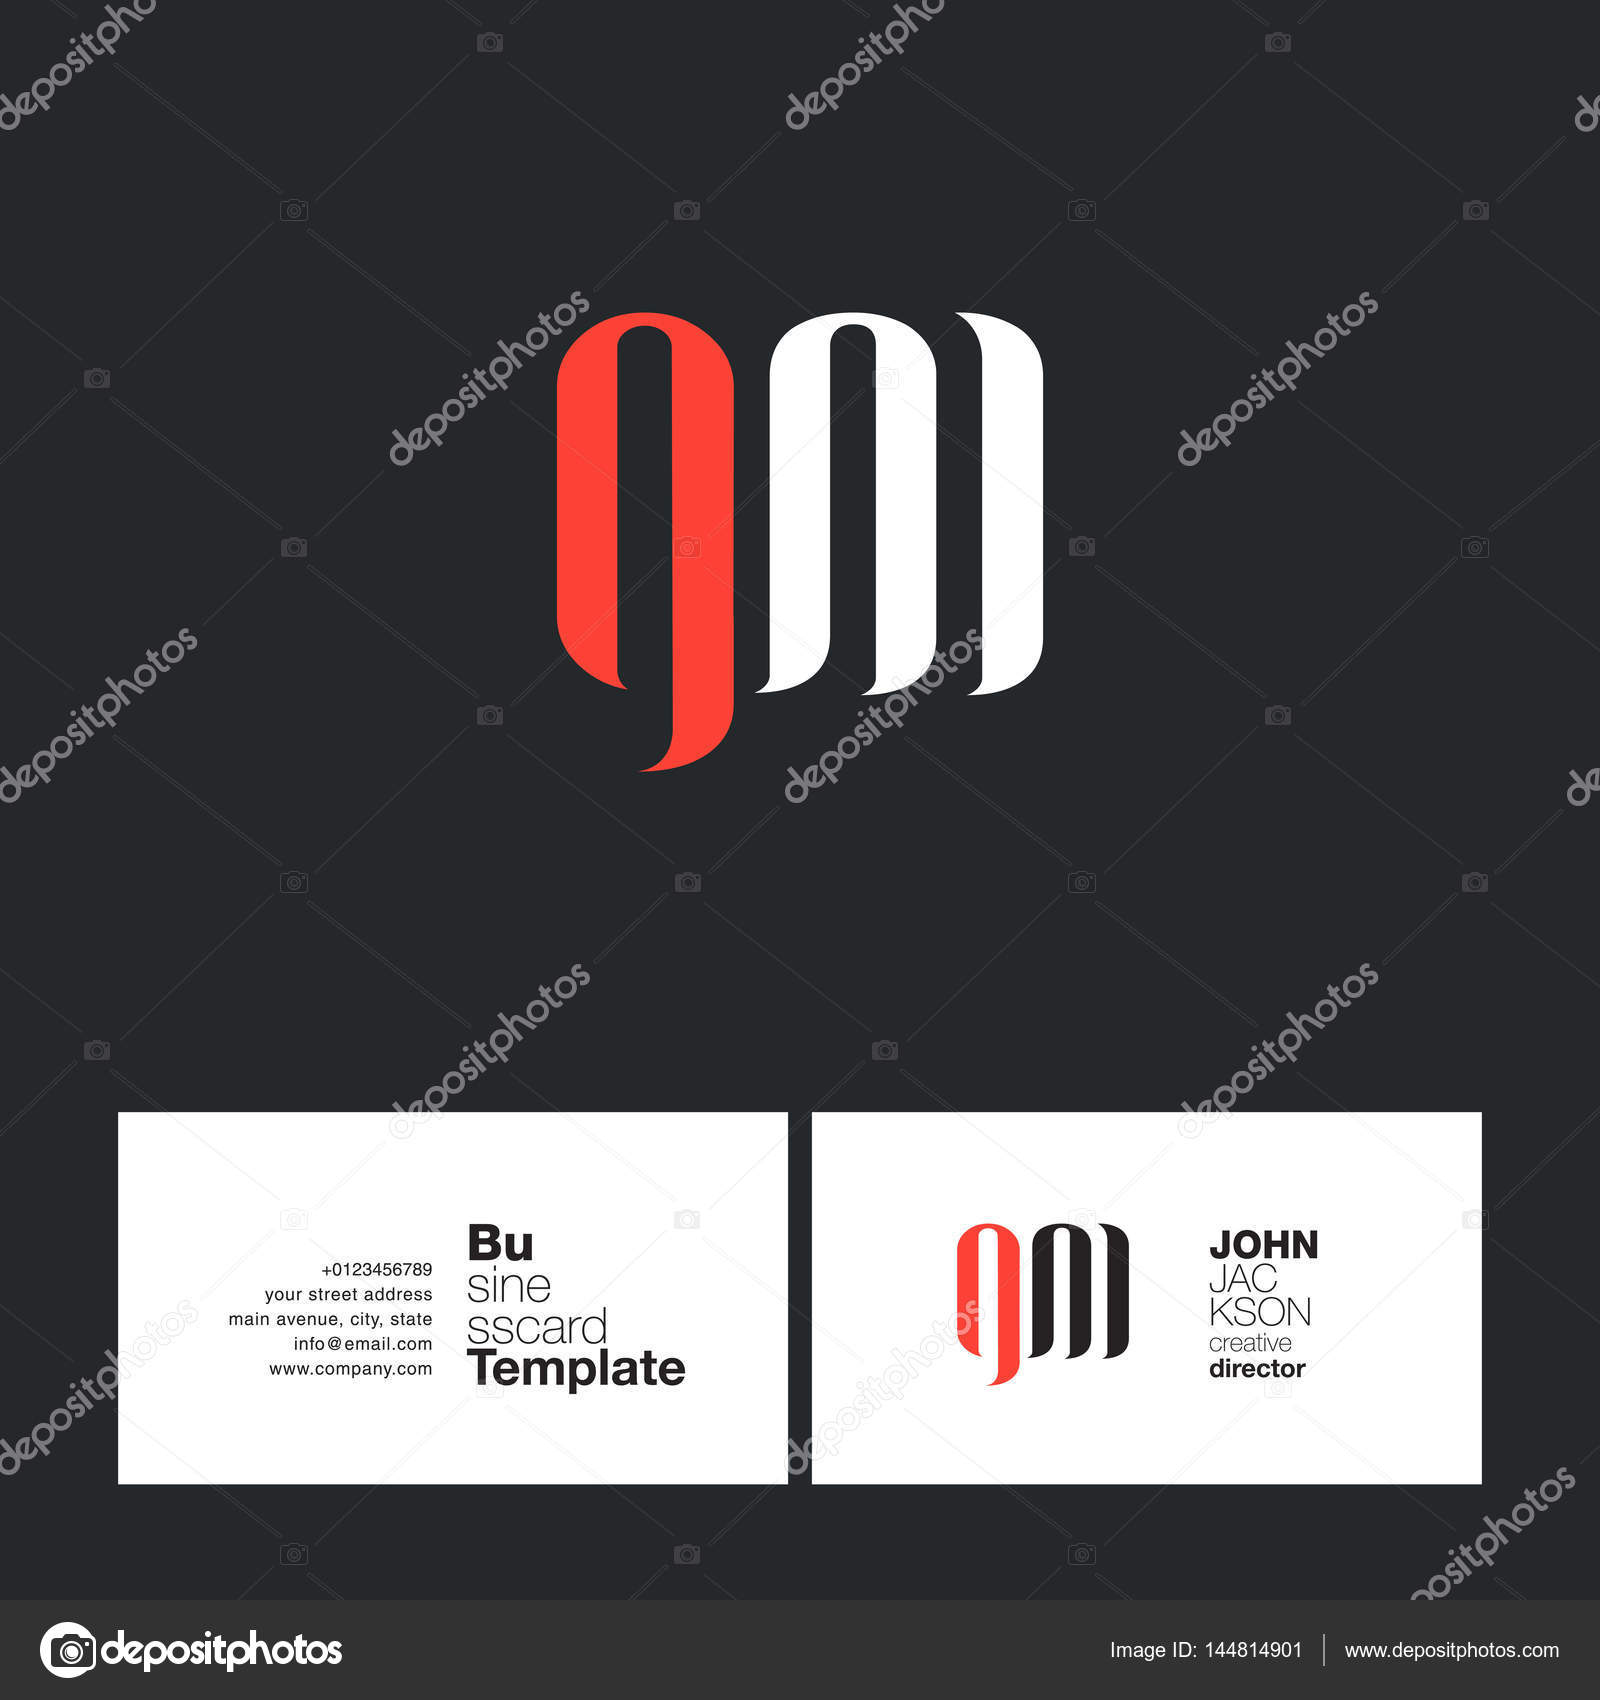 Gm letters logo business card stock vector brainbistro 144814901 gm letters logo business card stock vector colourmoves